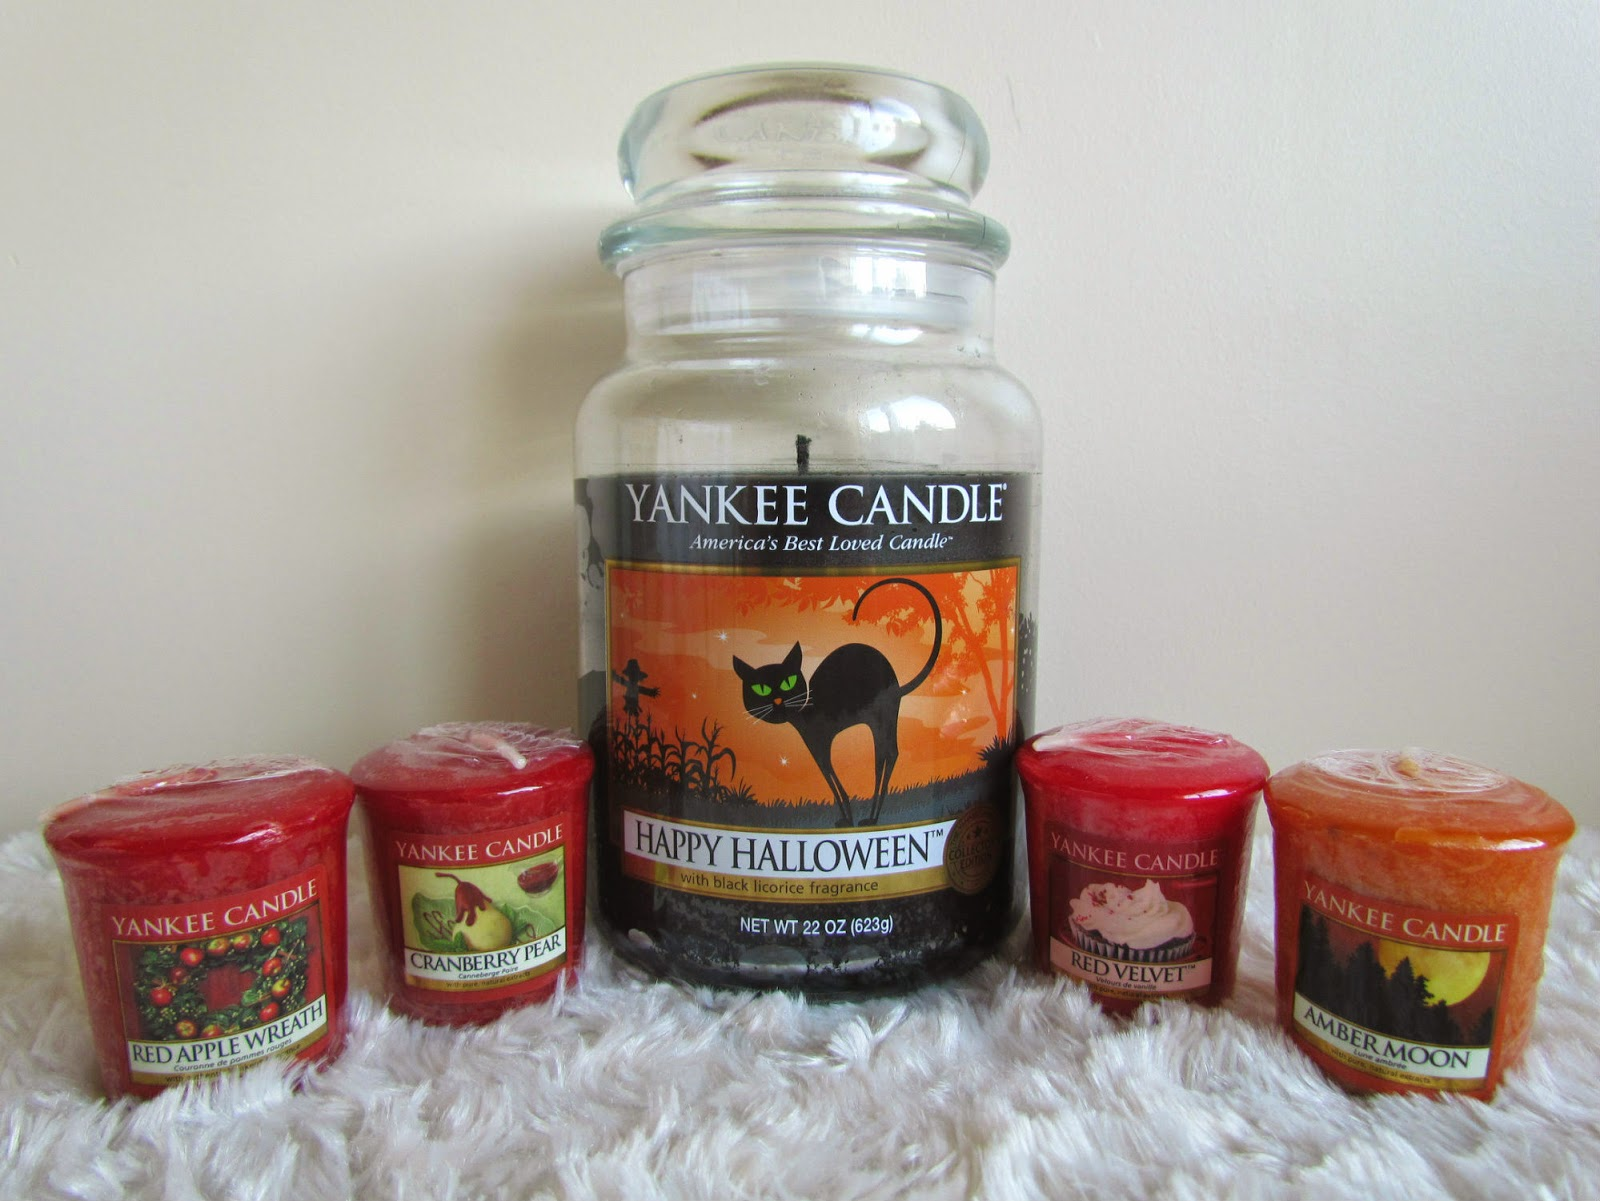 Week My Lovely Fiance Surprised Me With Five New Yankee Candles To Add Collection One Large Jar Candle And Four Votive Ones